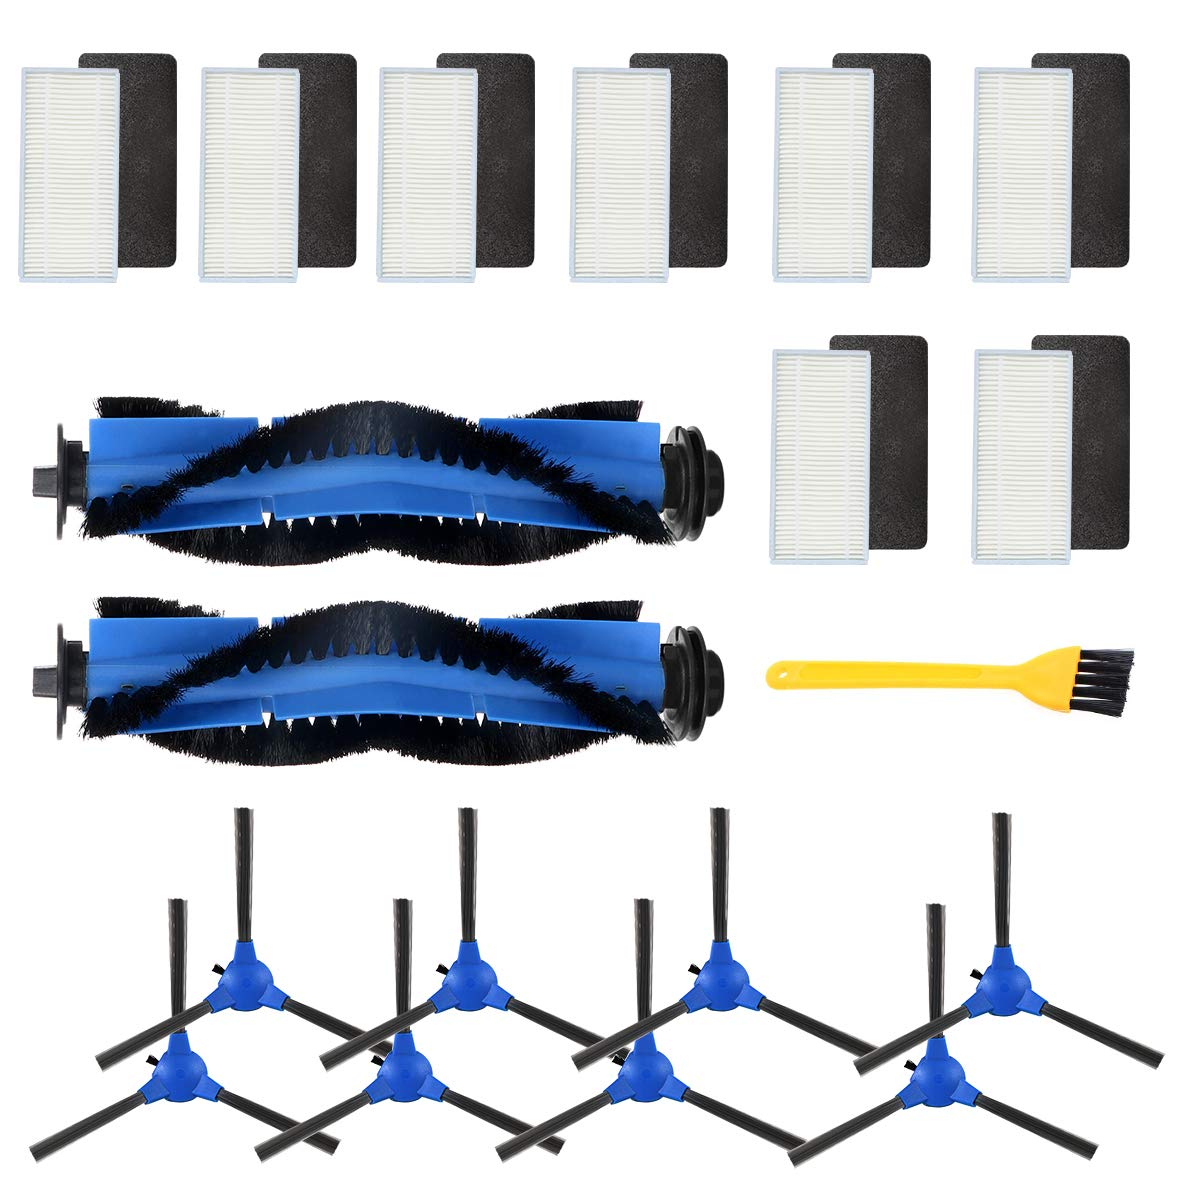 Wigbow Accessories Kit Compatible with eufy RoboVac 11S, RoboVac 30, RoboVac 30C, RoboVac 15C, Accessory Robotic Vacuum 8 Cleaner Filters, 8 Side Brushes, 2 Rolling Brush. (Blue 8821)